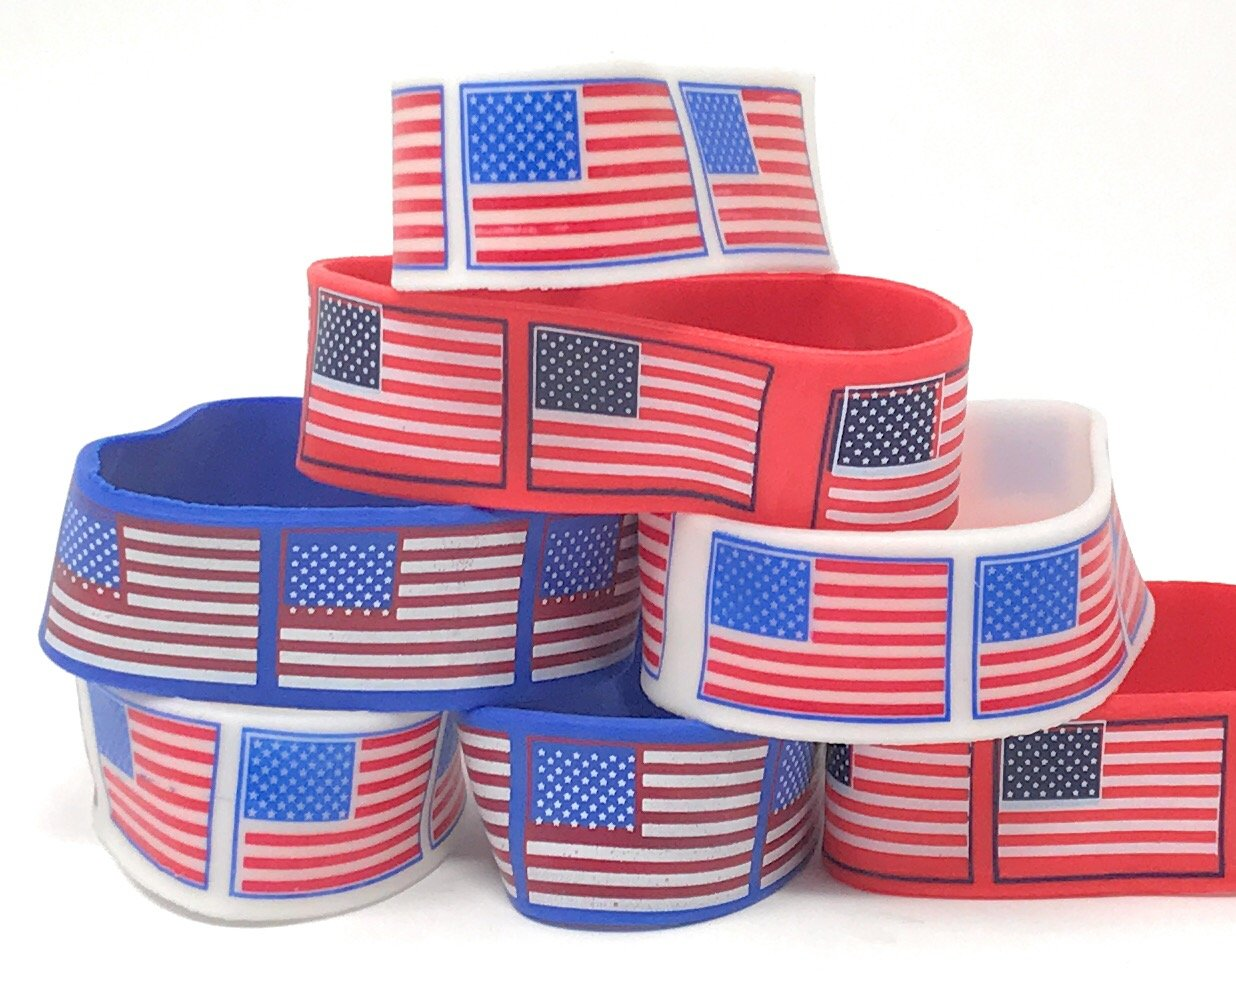 Bulk 48 Pack of American Flag Bracelets - Ideal Party Favors for Fourth of July Parades, 4th of July Parties, BBQ's, Picnics and Family Events by SVT (Image #4)